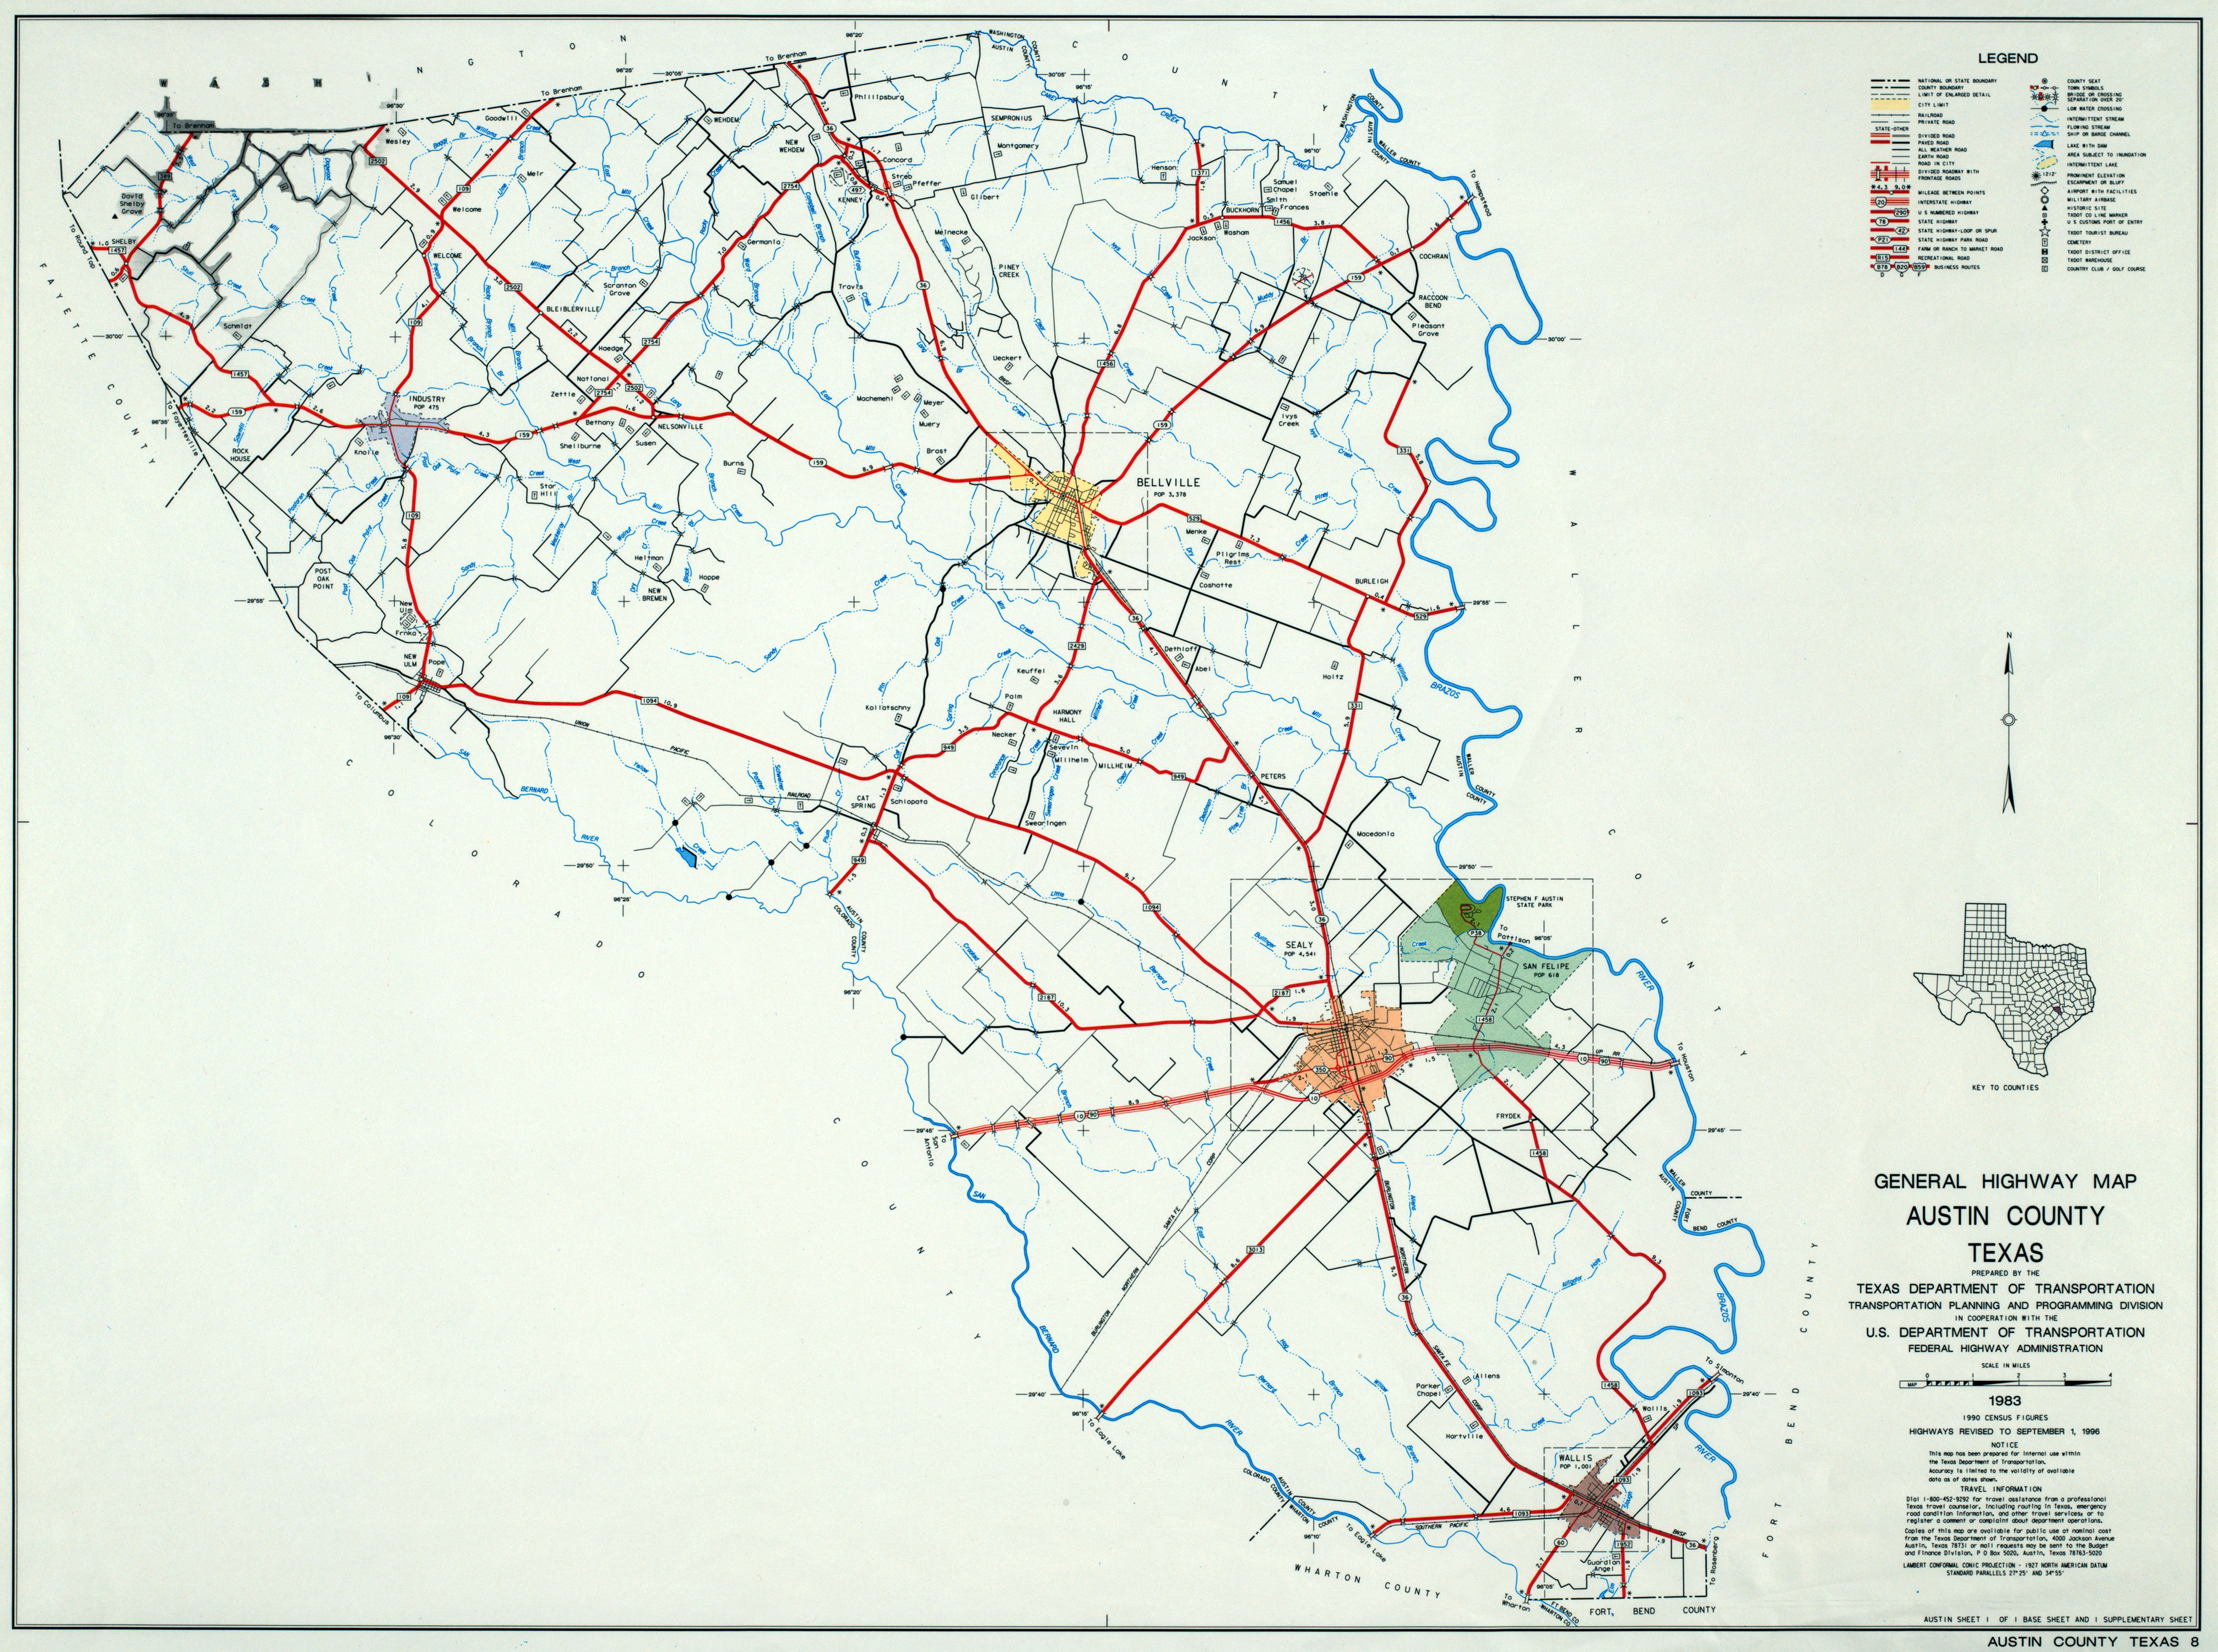 Texas County Highway Maps Browse Perry Casta±eda Map Collection